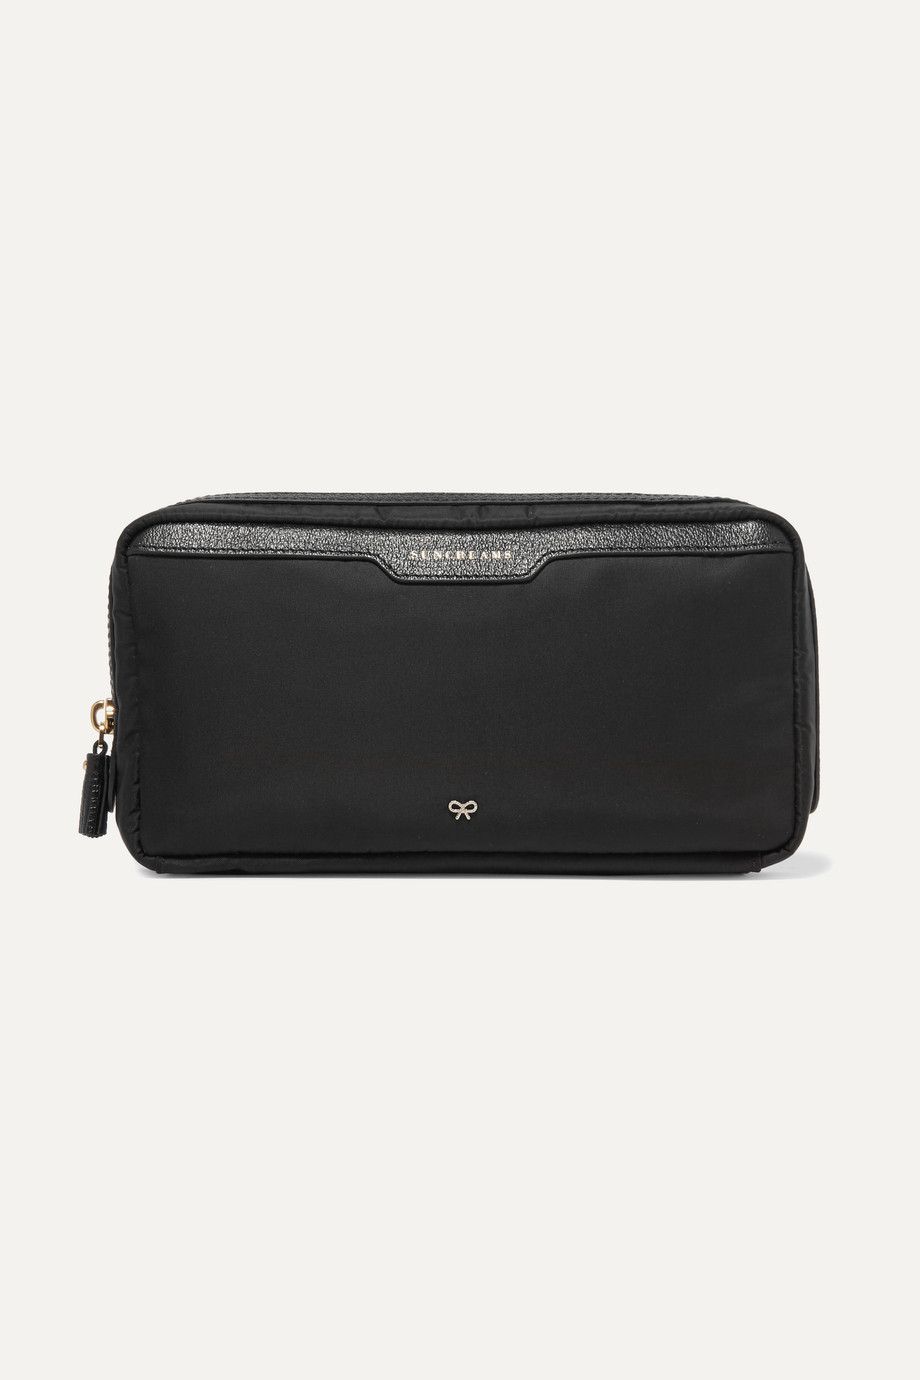 Anya Hindmarch Suncreams leather-trimmed shell cosmetics case